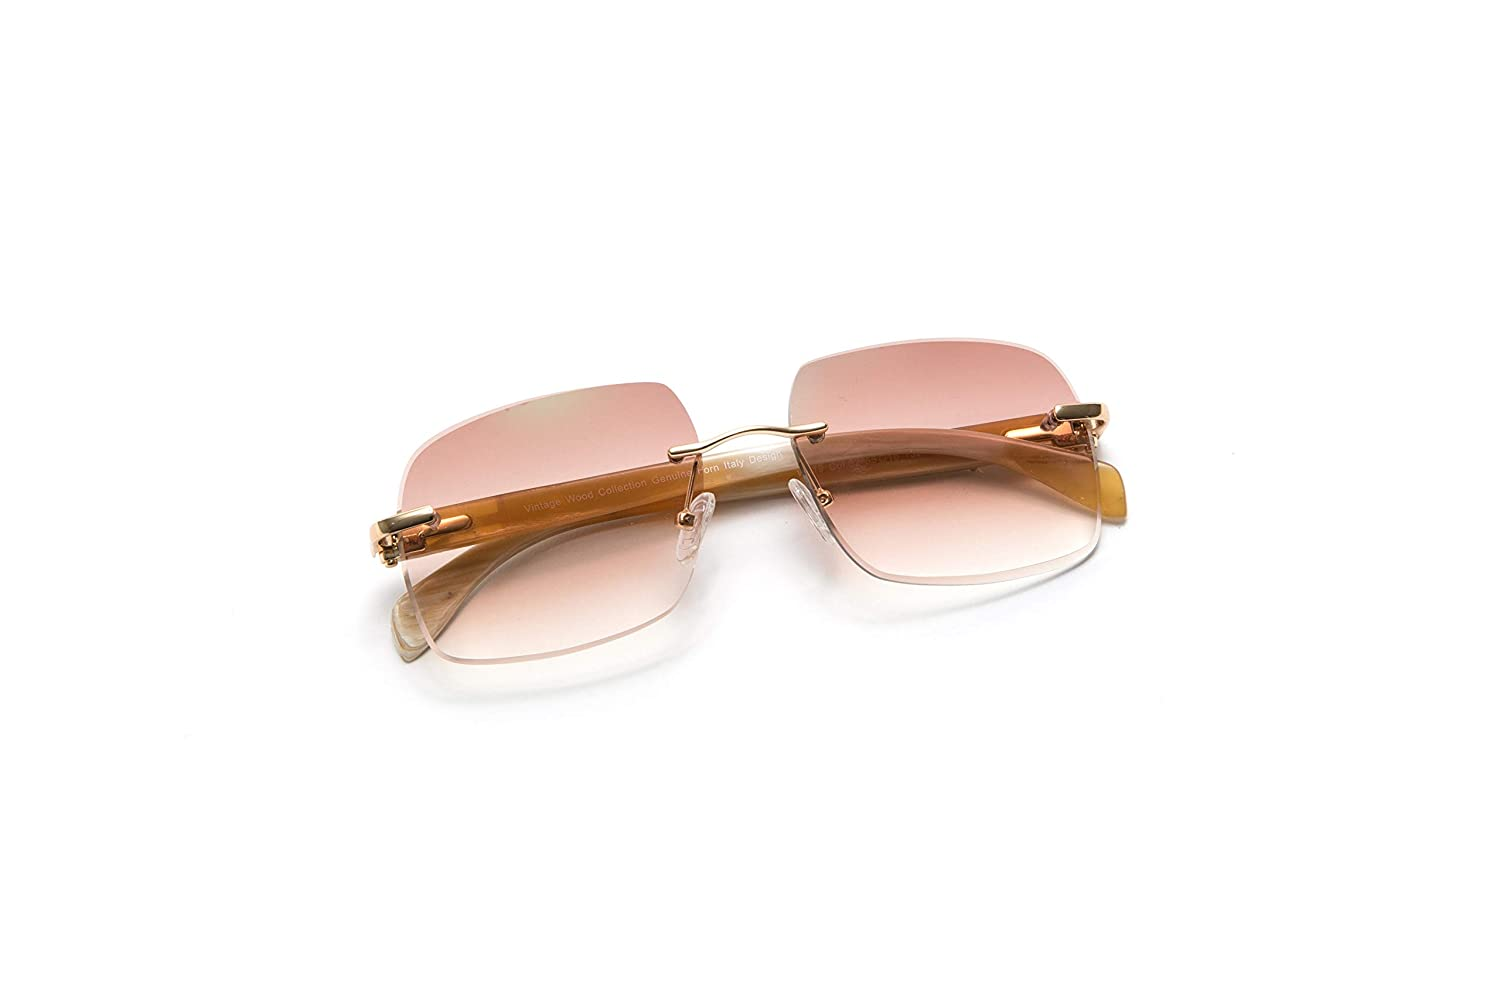 Amazon.com: Vintage Wood Collection - Gafas de sol sin ...